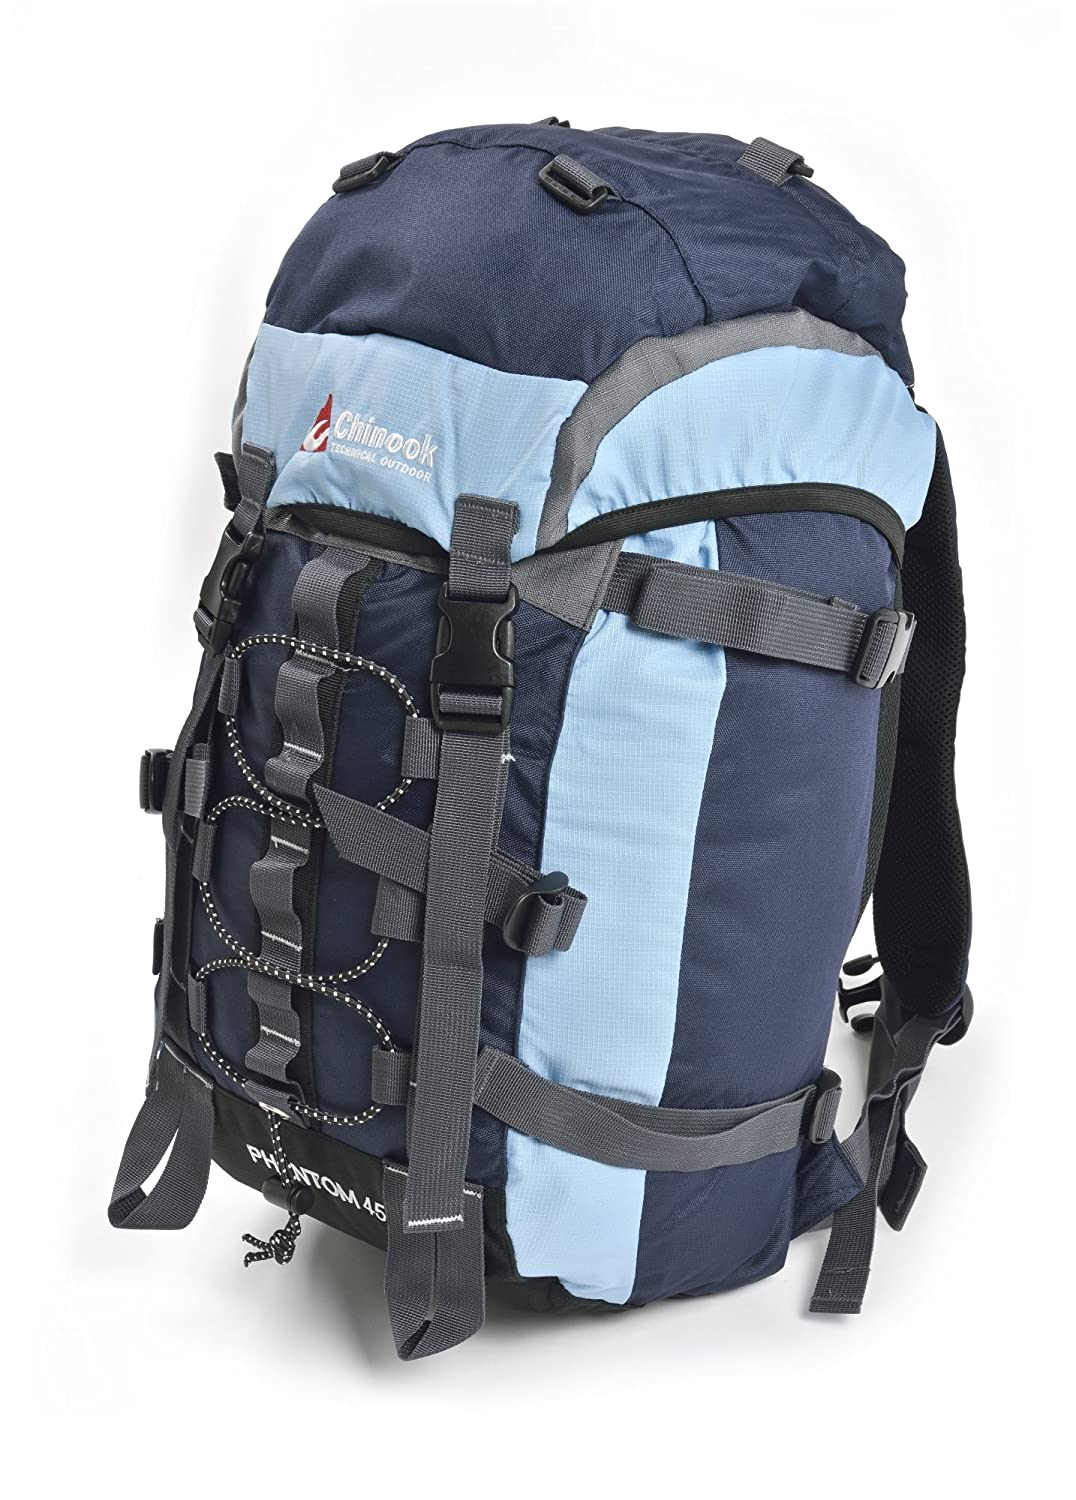 Chinook Phantom Technical Daypack 31320BK-Parent